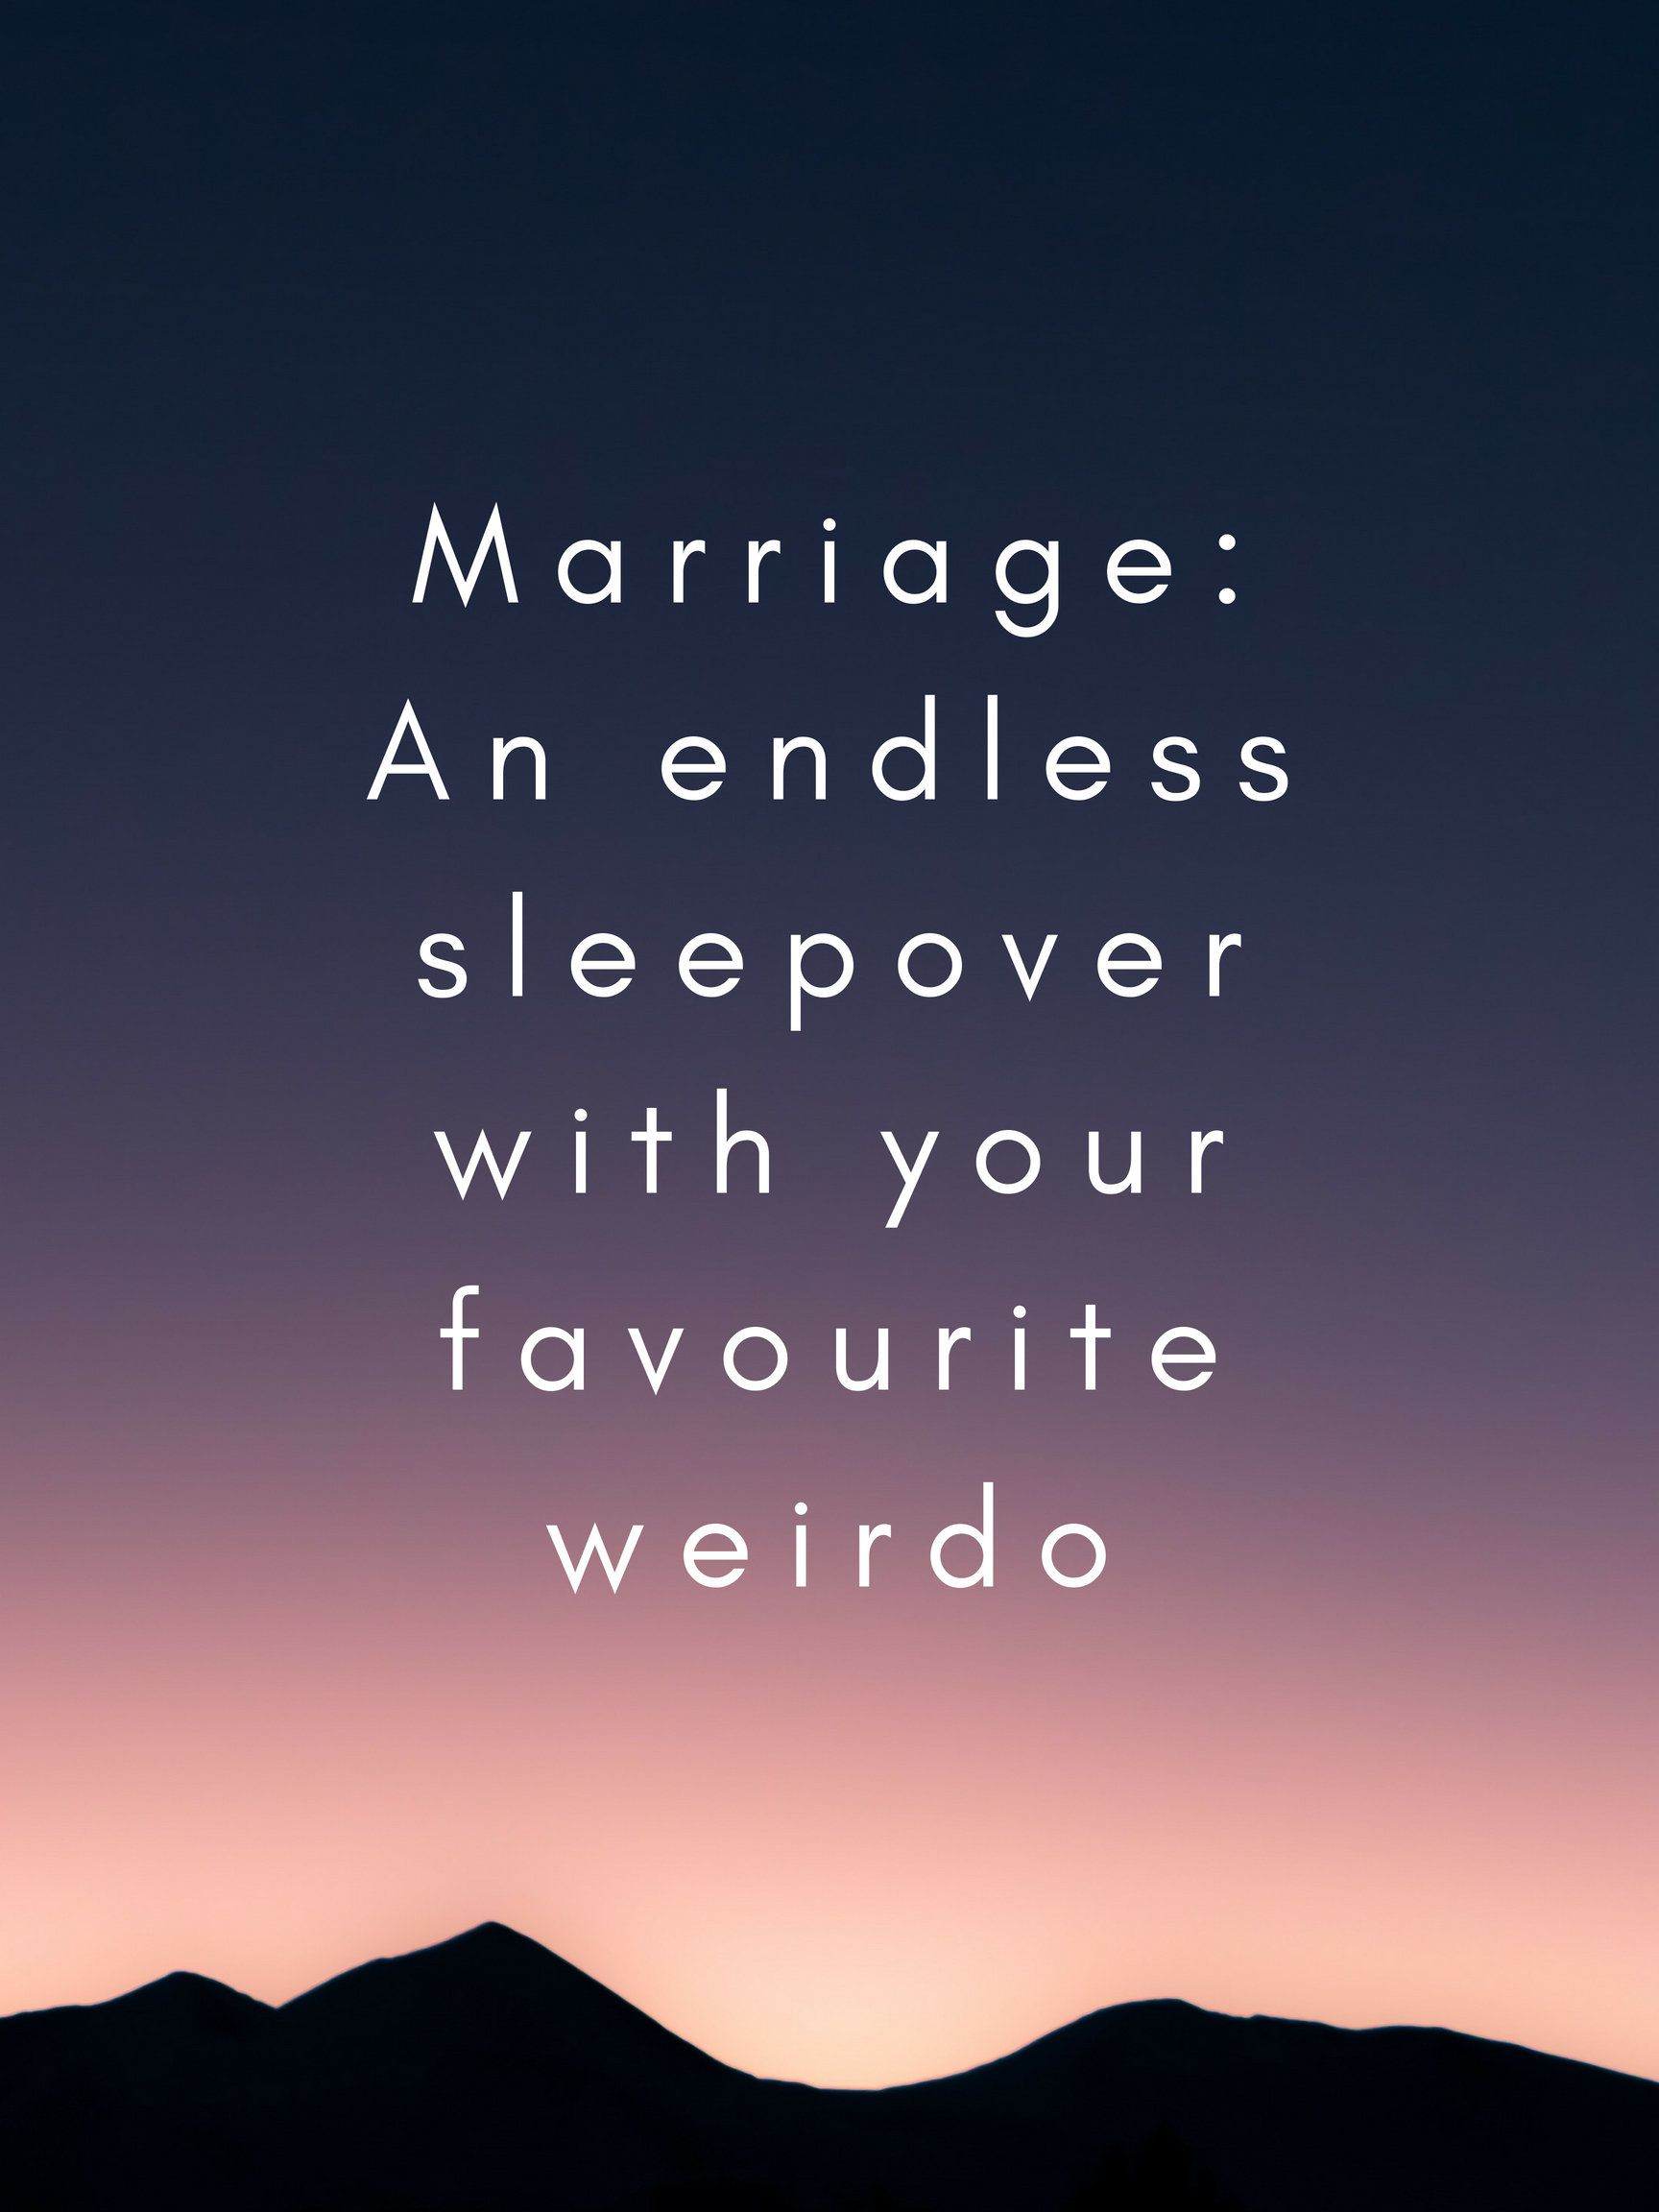 Marriage An Endless Sleepover With Your Favourite Weirdo Married Quote Lovers Quote By Orbitartstu Marry Me Quotes Happily Married Quotes Married Quotes